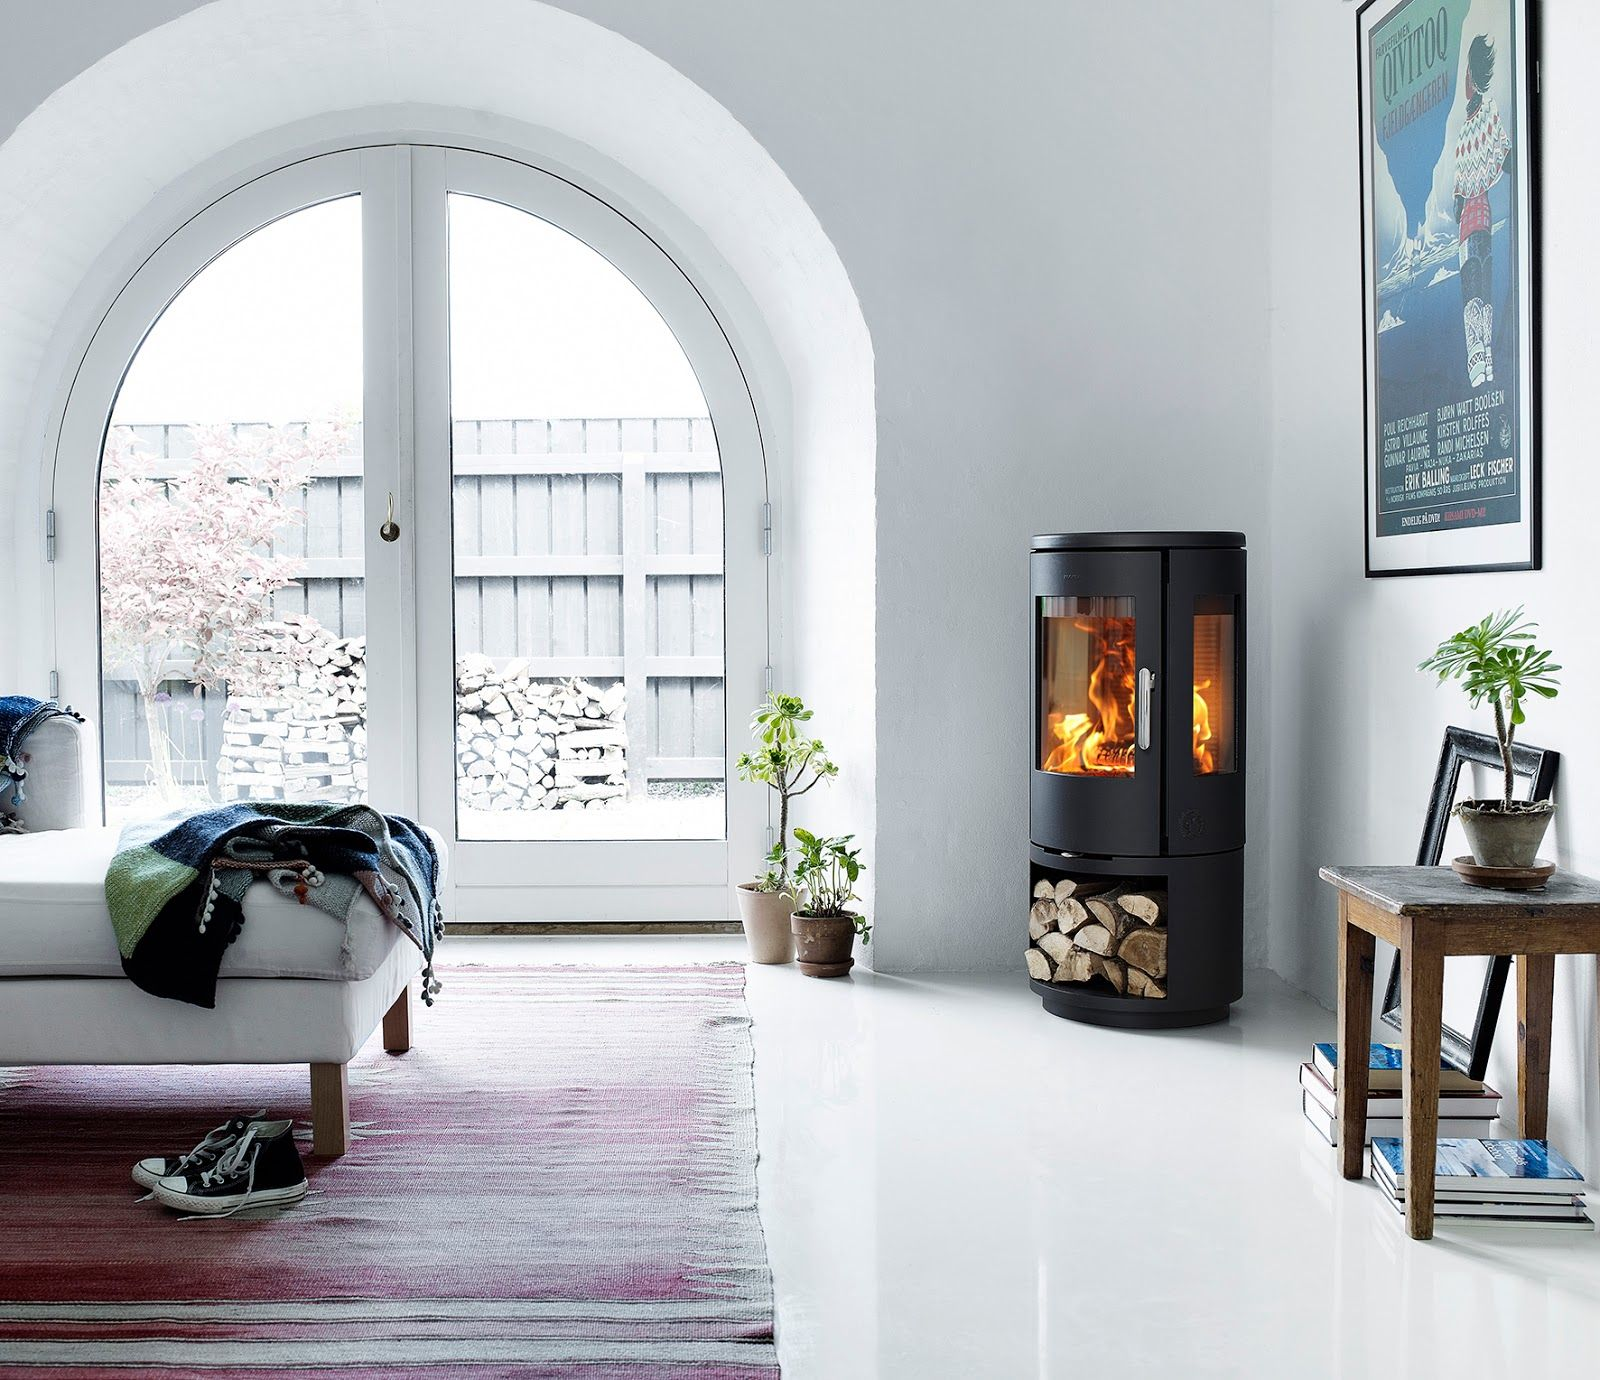 Us Option - Contemporary - Pinterest - Morso Stoves, Cooker